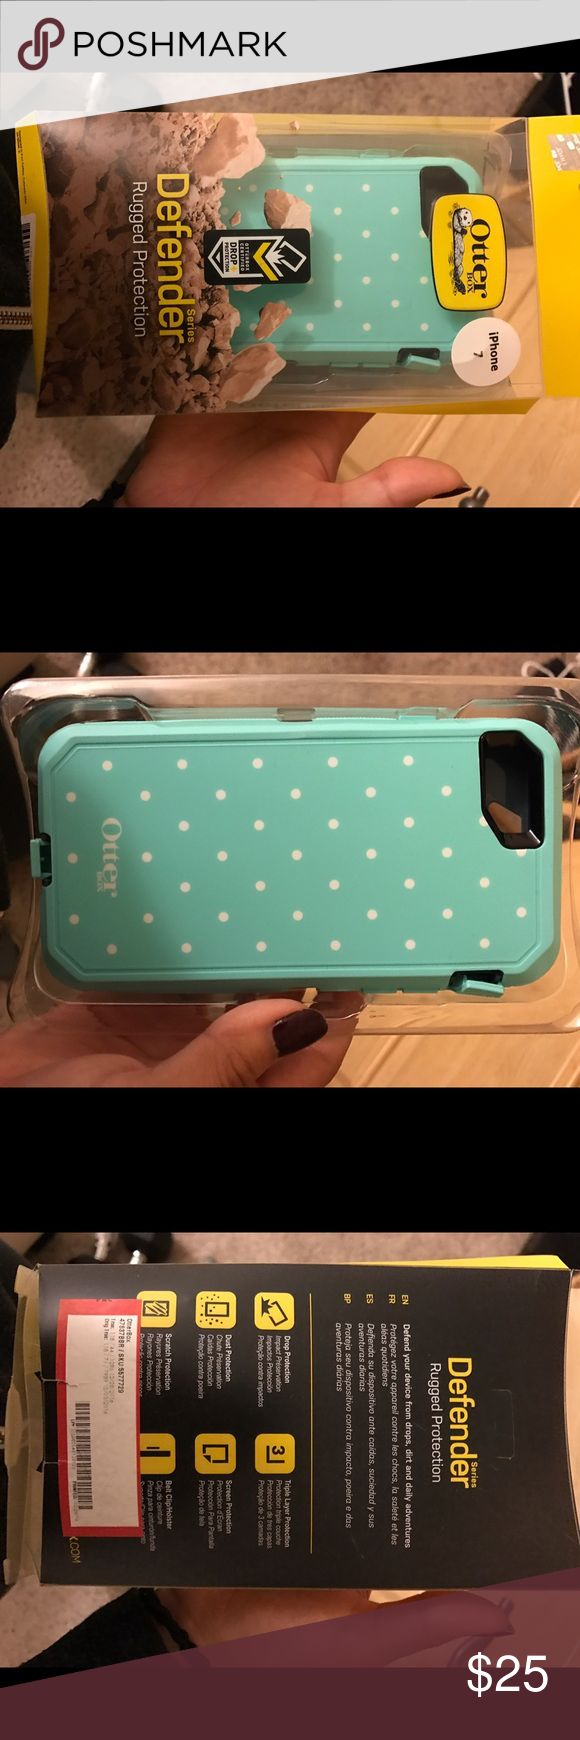 iPhone 7 otter box case Light blue with white polka dots - new - used once - comes with everything OtterBox Accessories Phone Cases